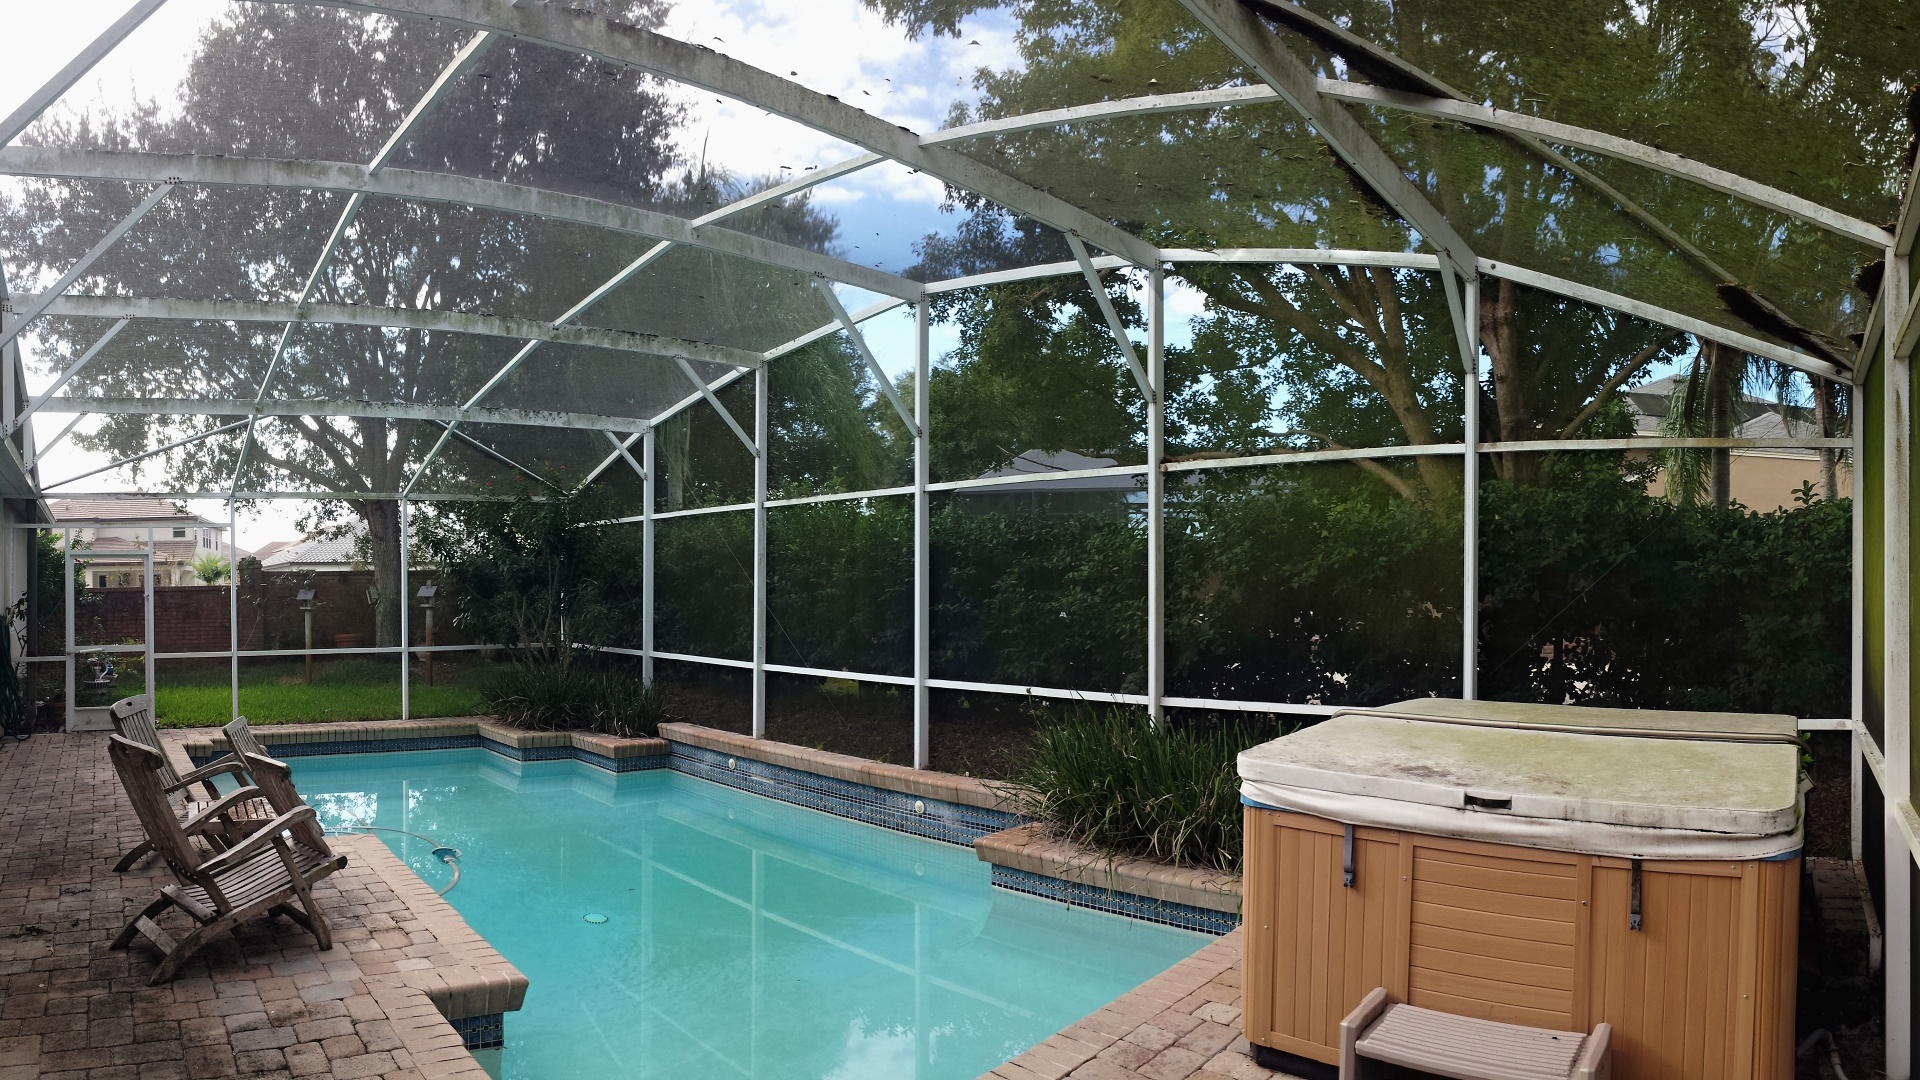 pool-screen-repair-orlando-03-1080p.jpg